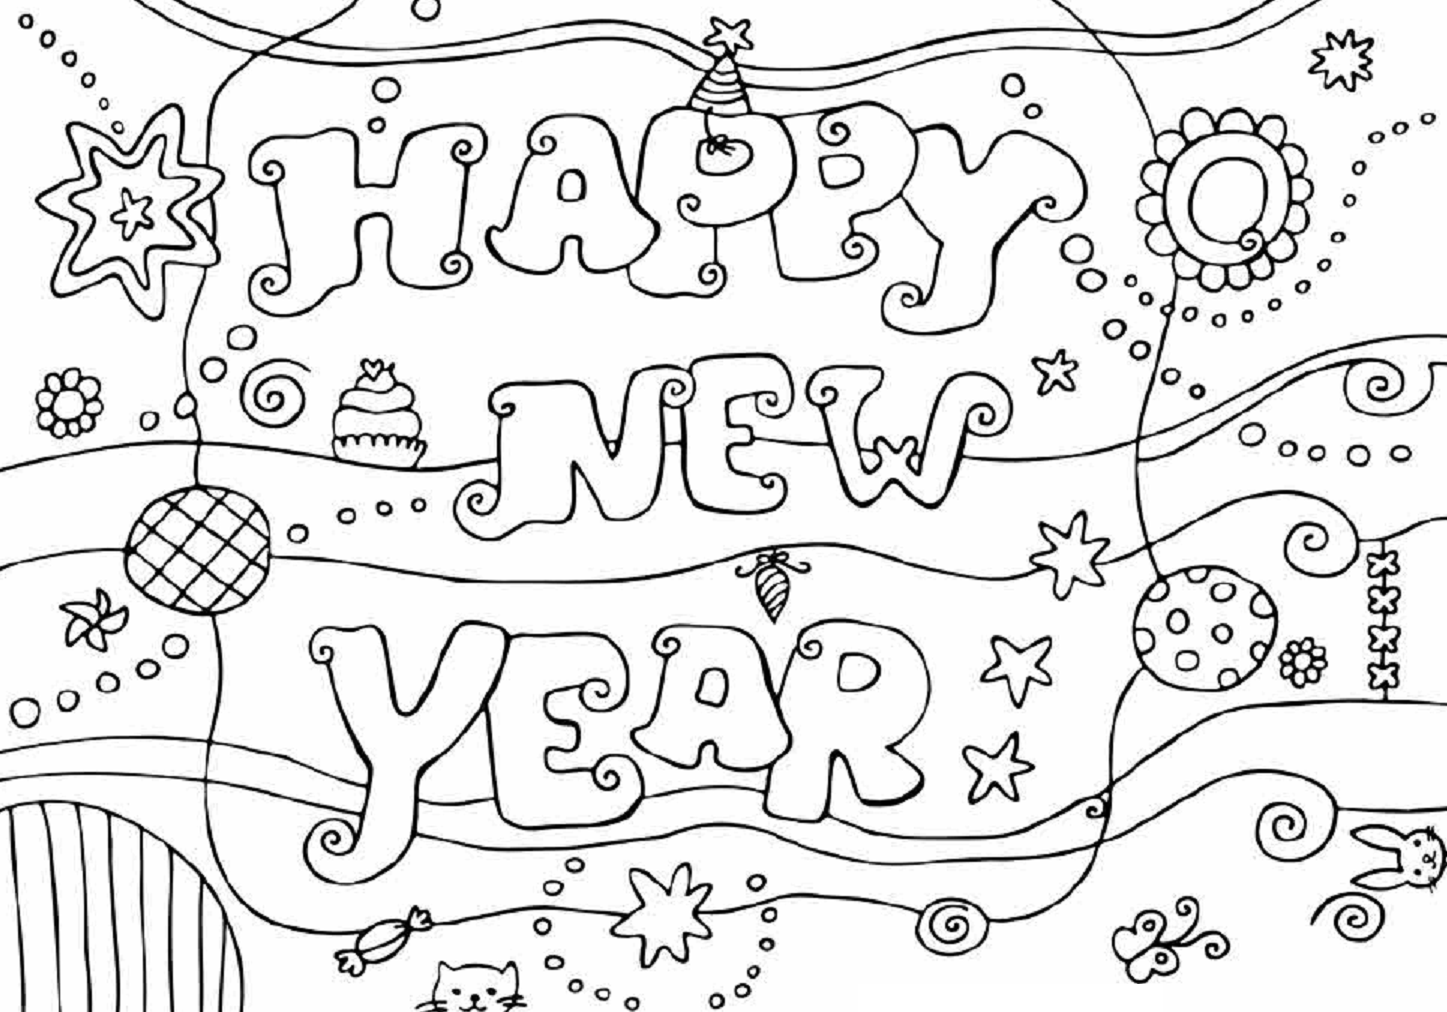 Colour Drawing Free Hd Wallpapers Happy New Year 2015 New Year Coloring Pages